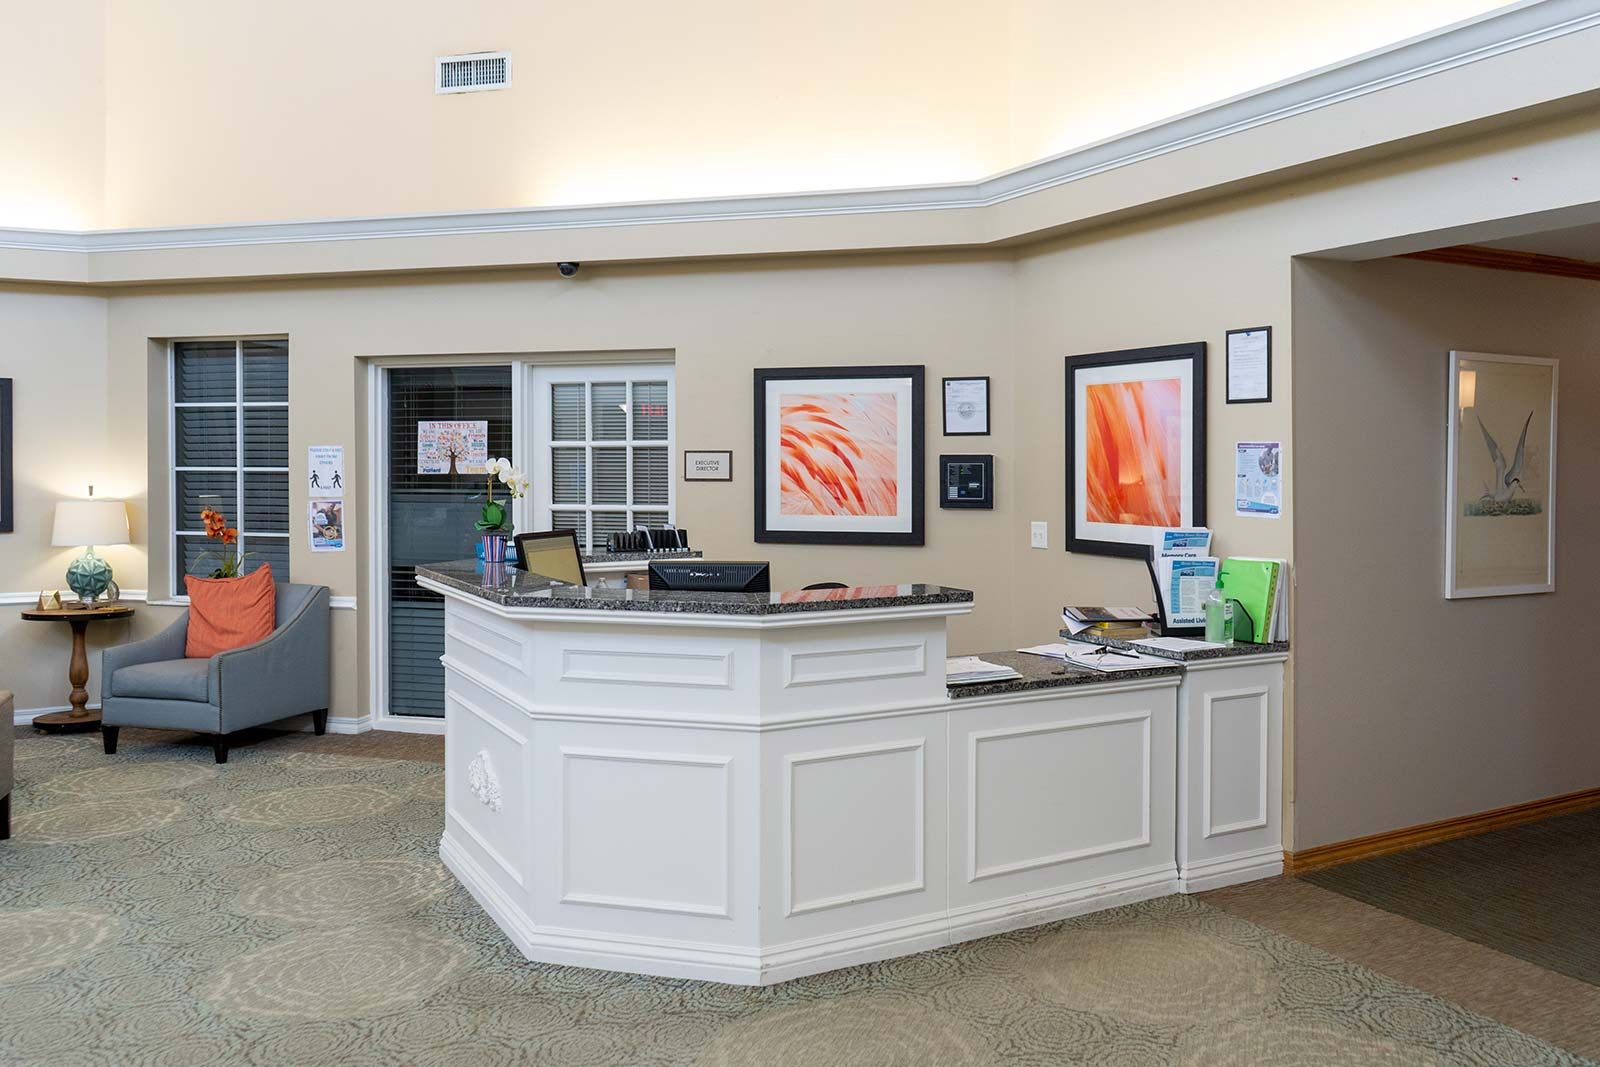 Concierge desk at Heron House assisted living and memory care community in Sarasota, FL